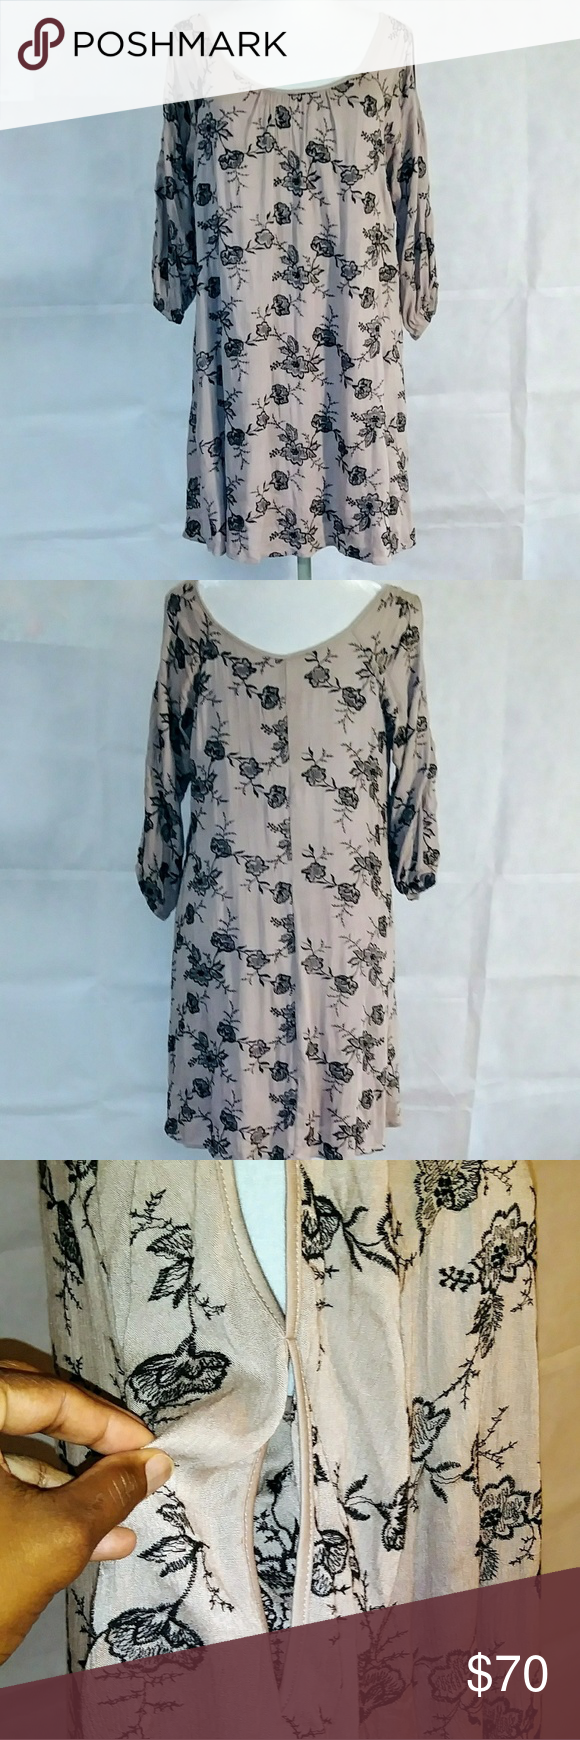 NAIF Mauve Floral Print A Line Dress Beautiful flattering piece Cold shoulder and arm cutouts Elastic 3/4 sleeves Embroidered with black flowers Cool …